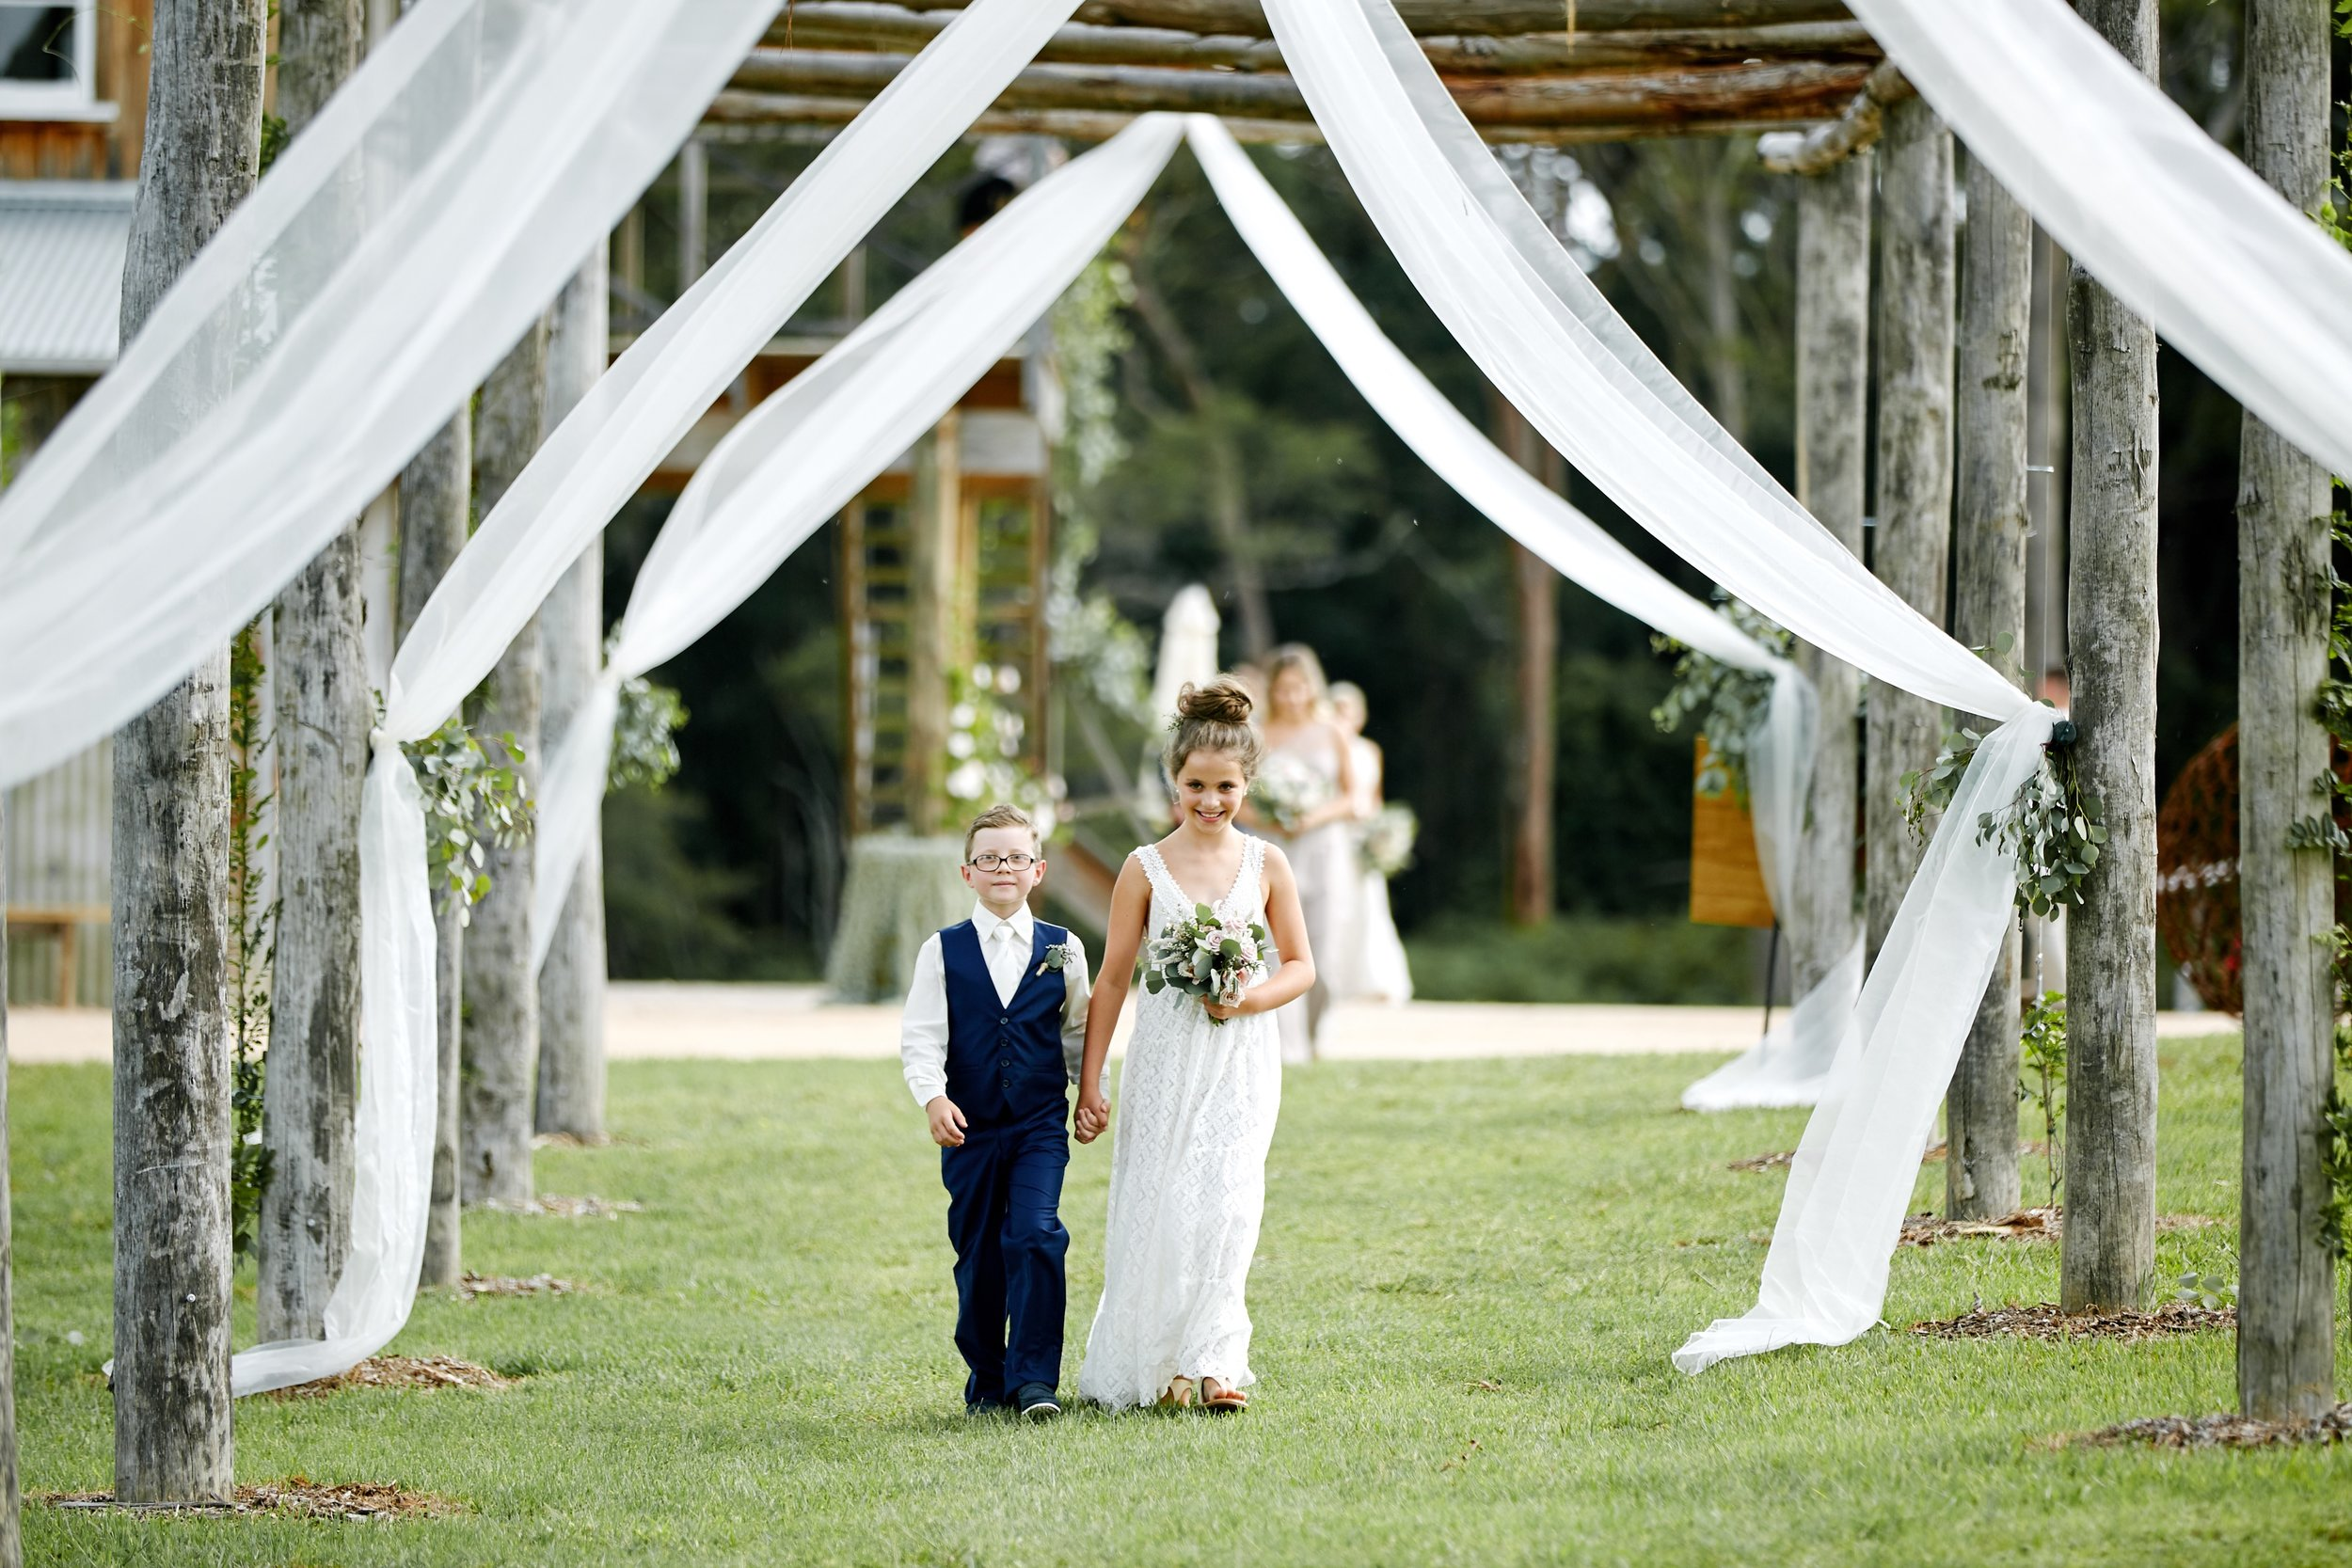 Flower girl and page boy walking down the aisle at an outdoor wedding in NSW Central Coast Wedding venue The Stables of Somersby